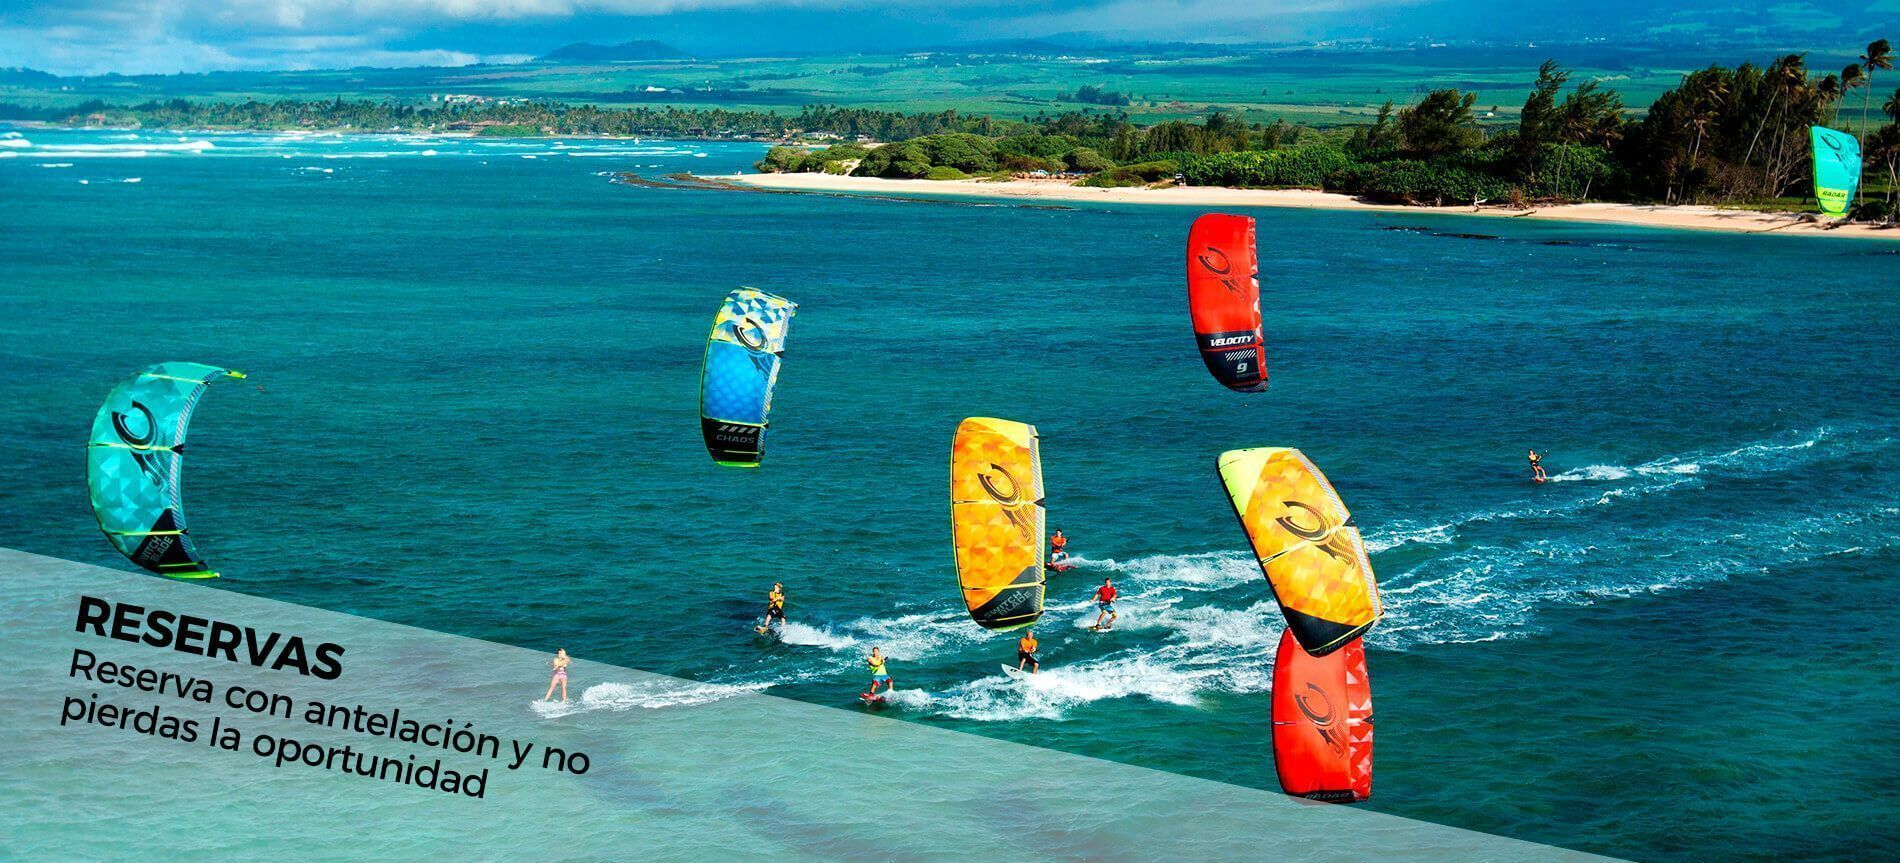 reservas de cursos de kitesurf en kite local scool